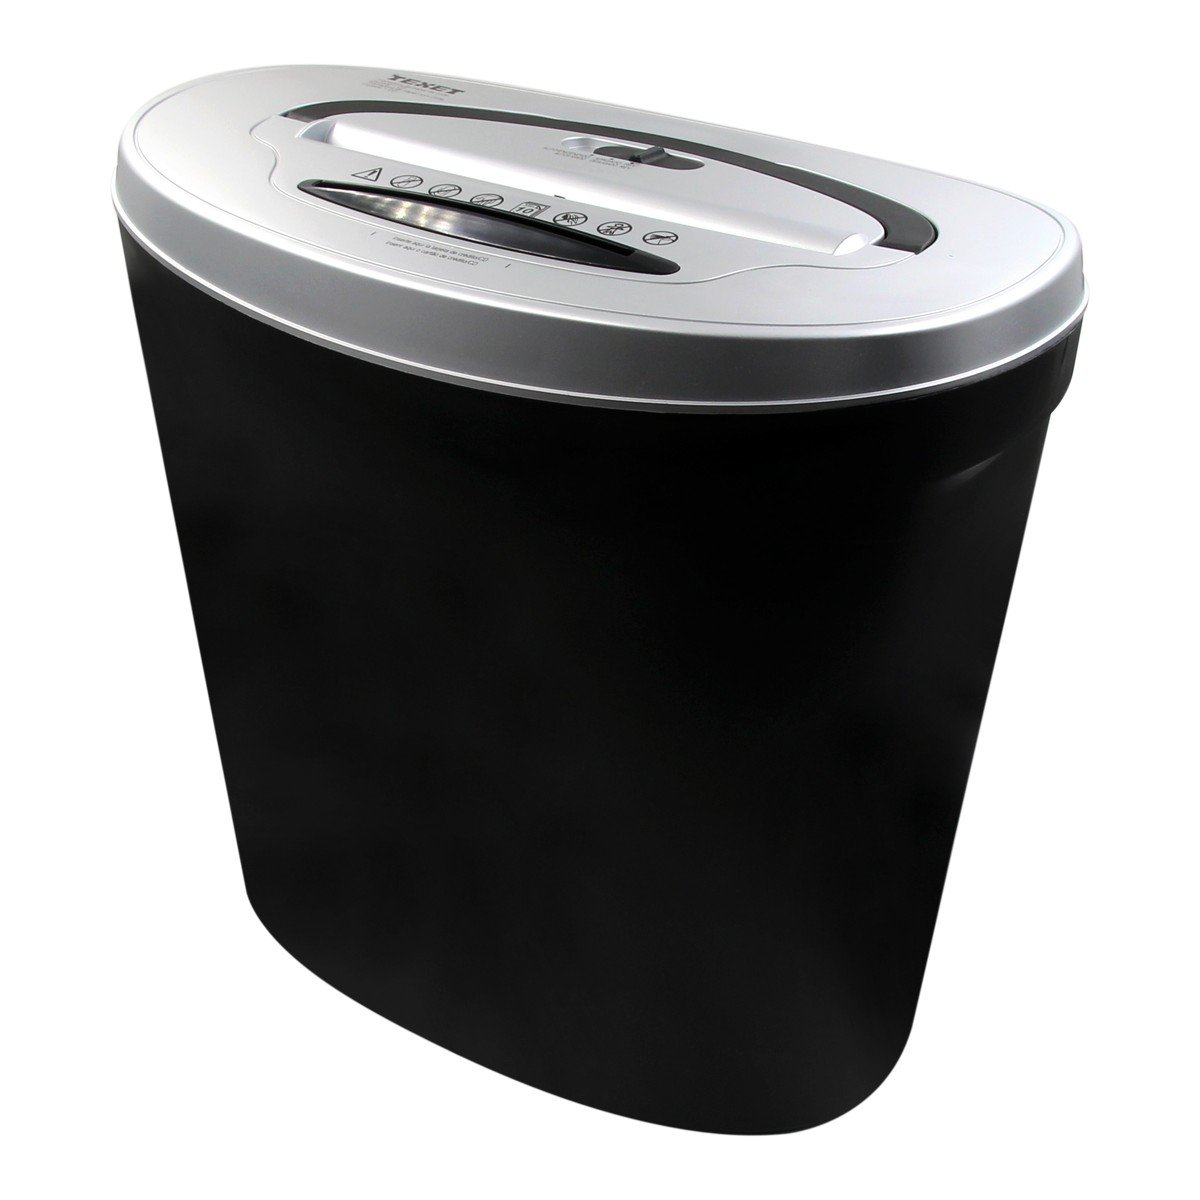 Upto 25% off On Office Electronics By Amazon | TEXET 12 Sheet High Speed Crosscut Paper Shredder | CD / DVD & Credit card Shredder | 1 Year Warranty @ Rs.2,999